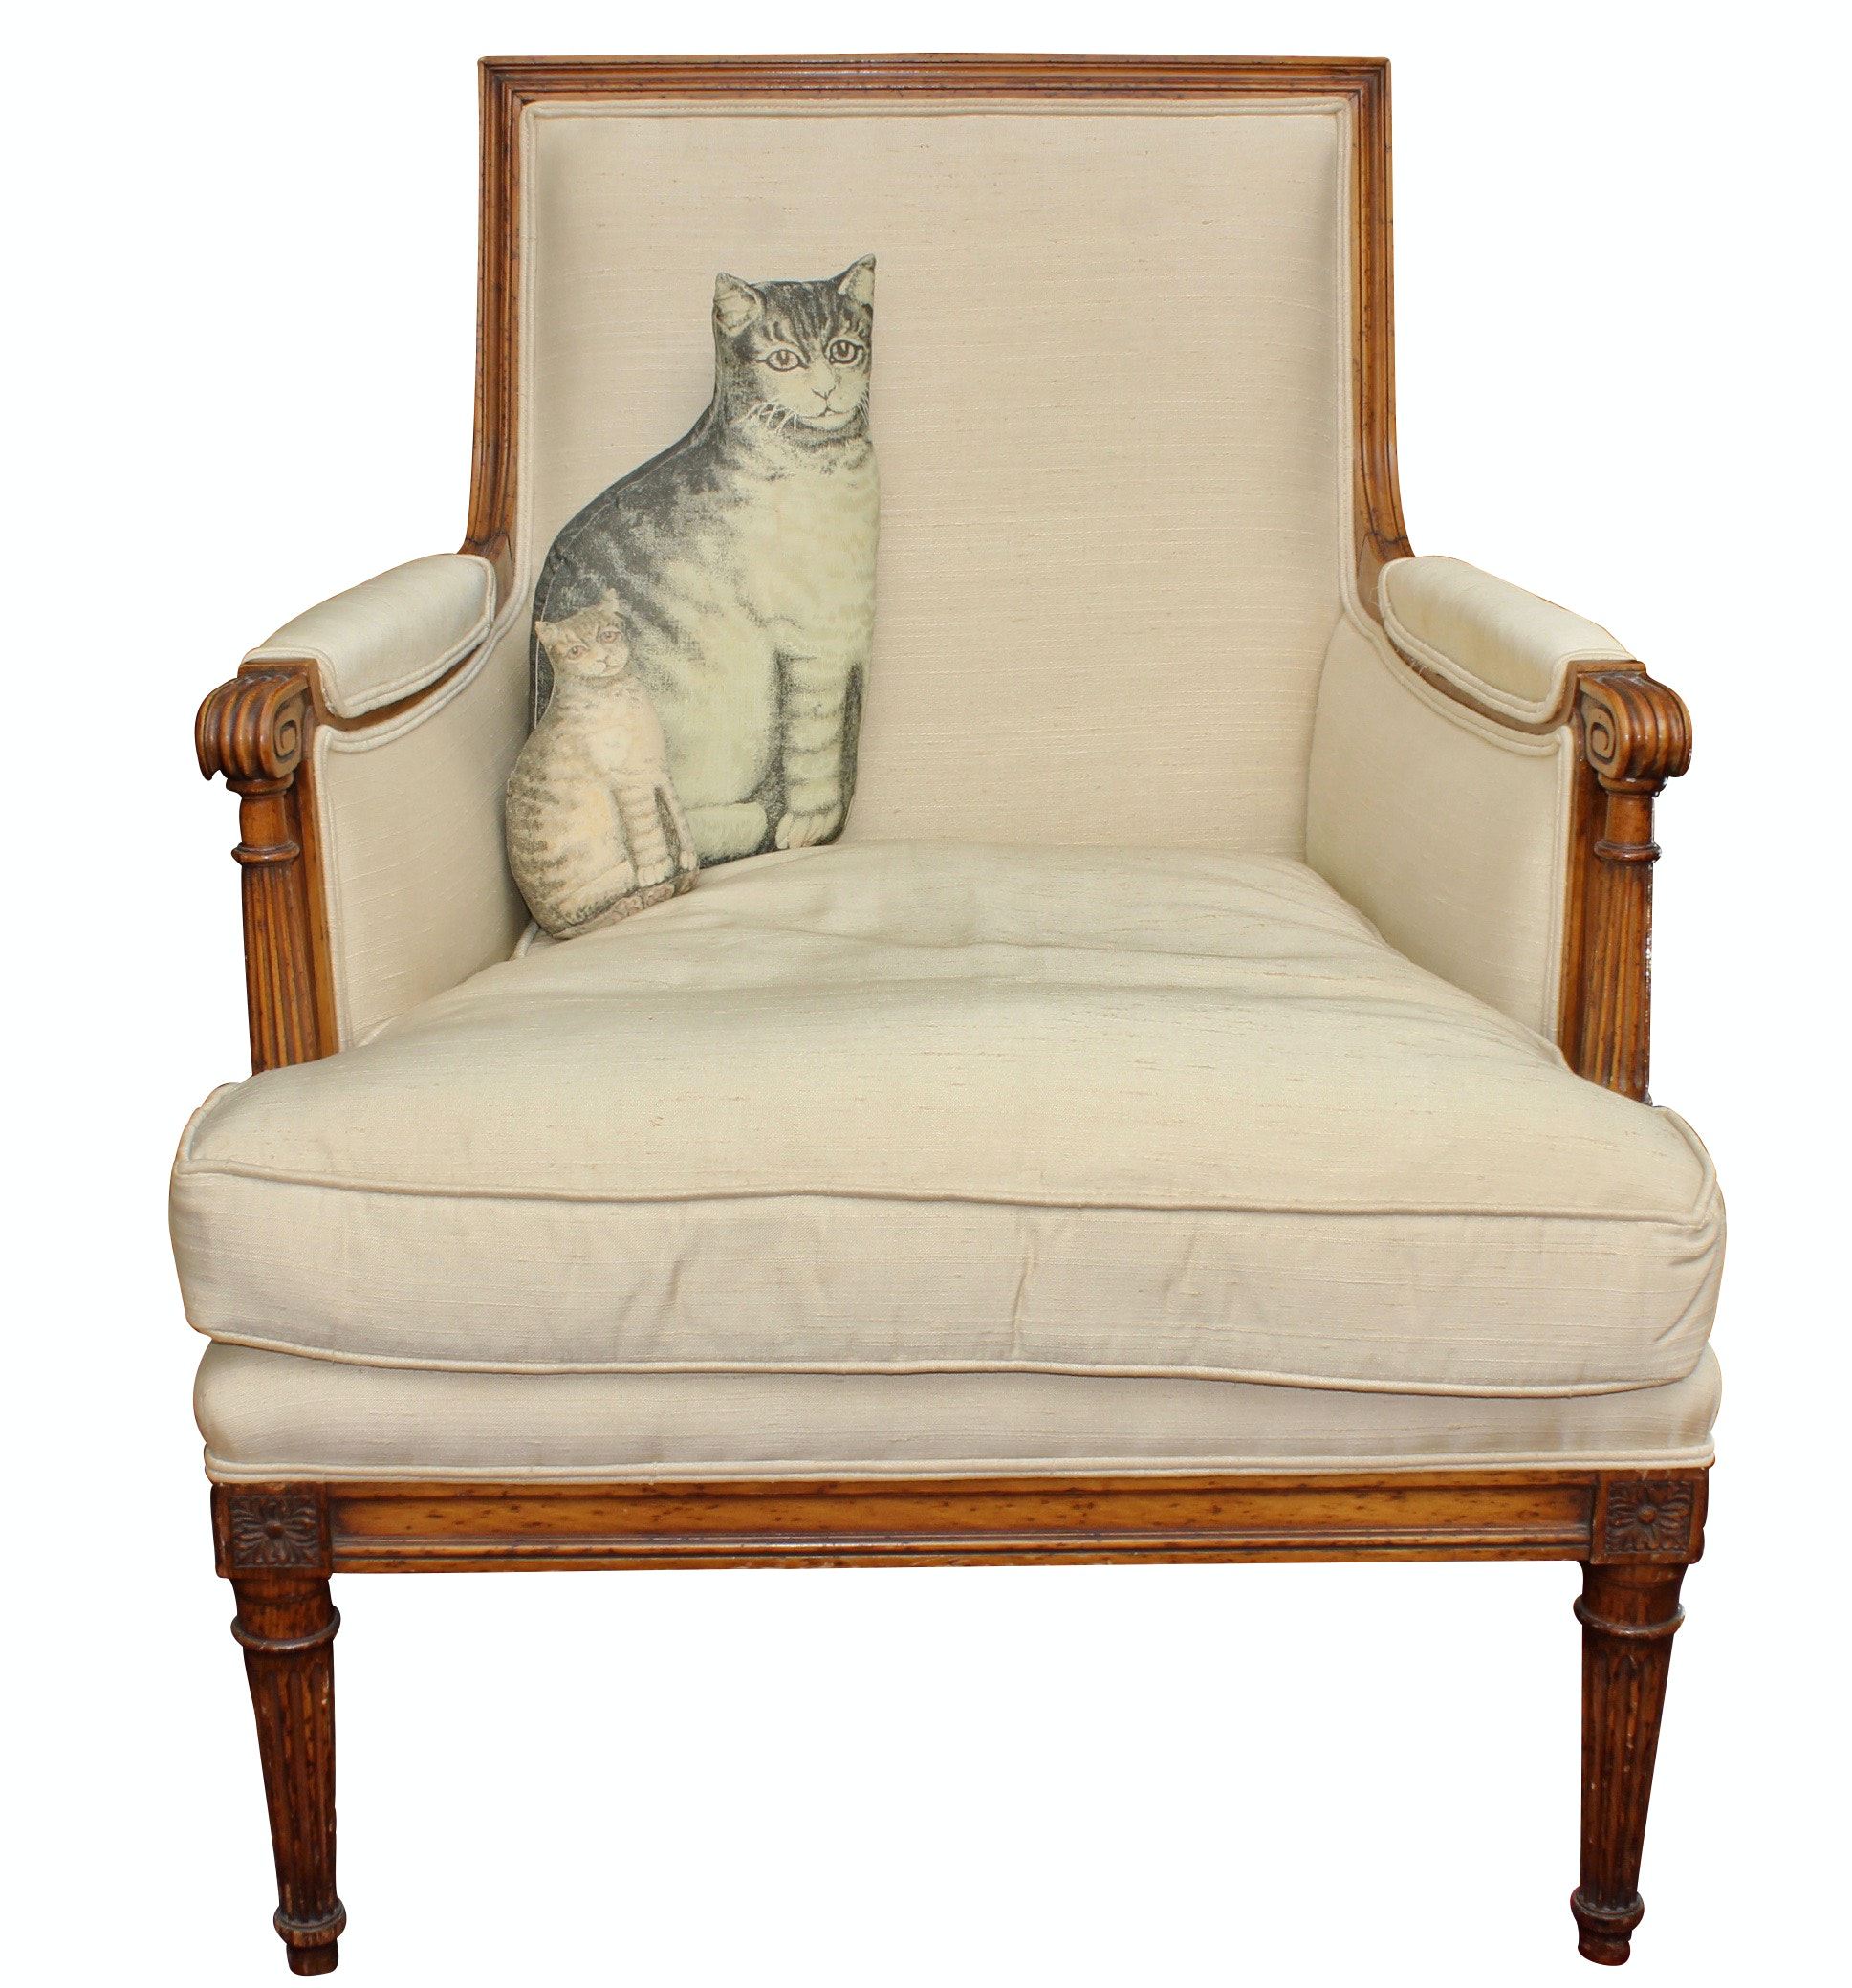 Louis XVI Upholstered Arm Chair, Antique